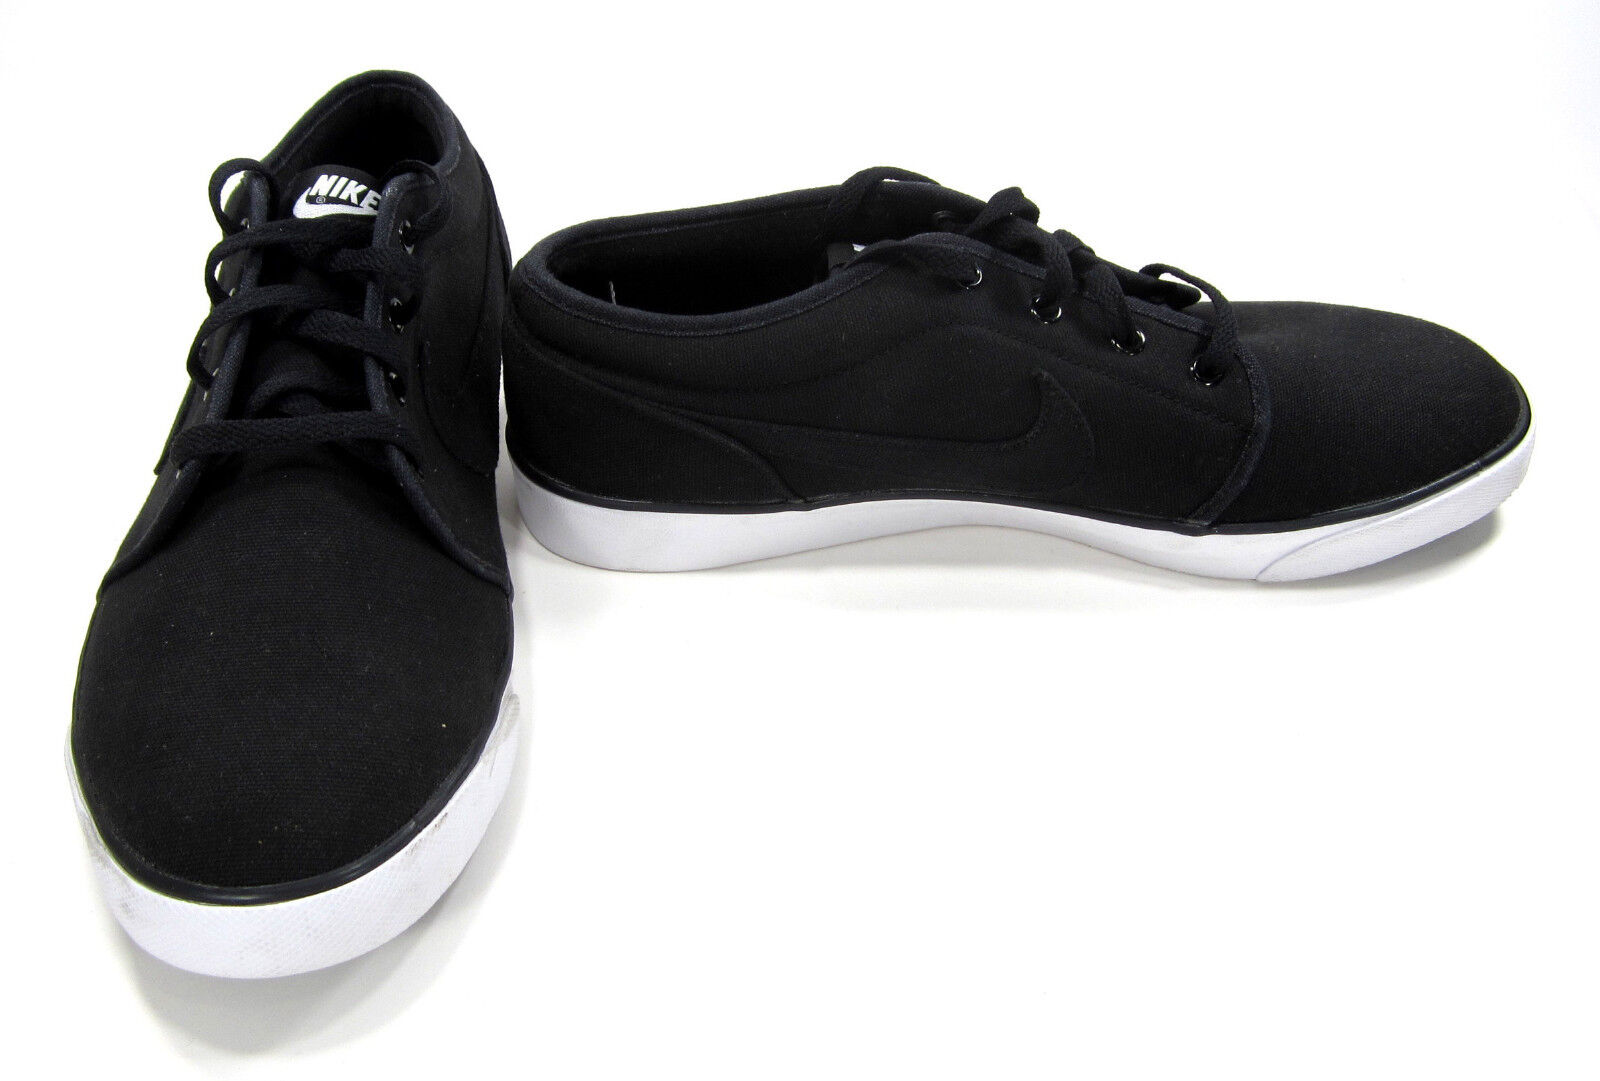 Nike shoes Coast Classic Canvas Black White Sneakers Size 13